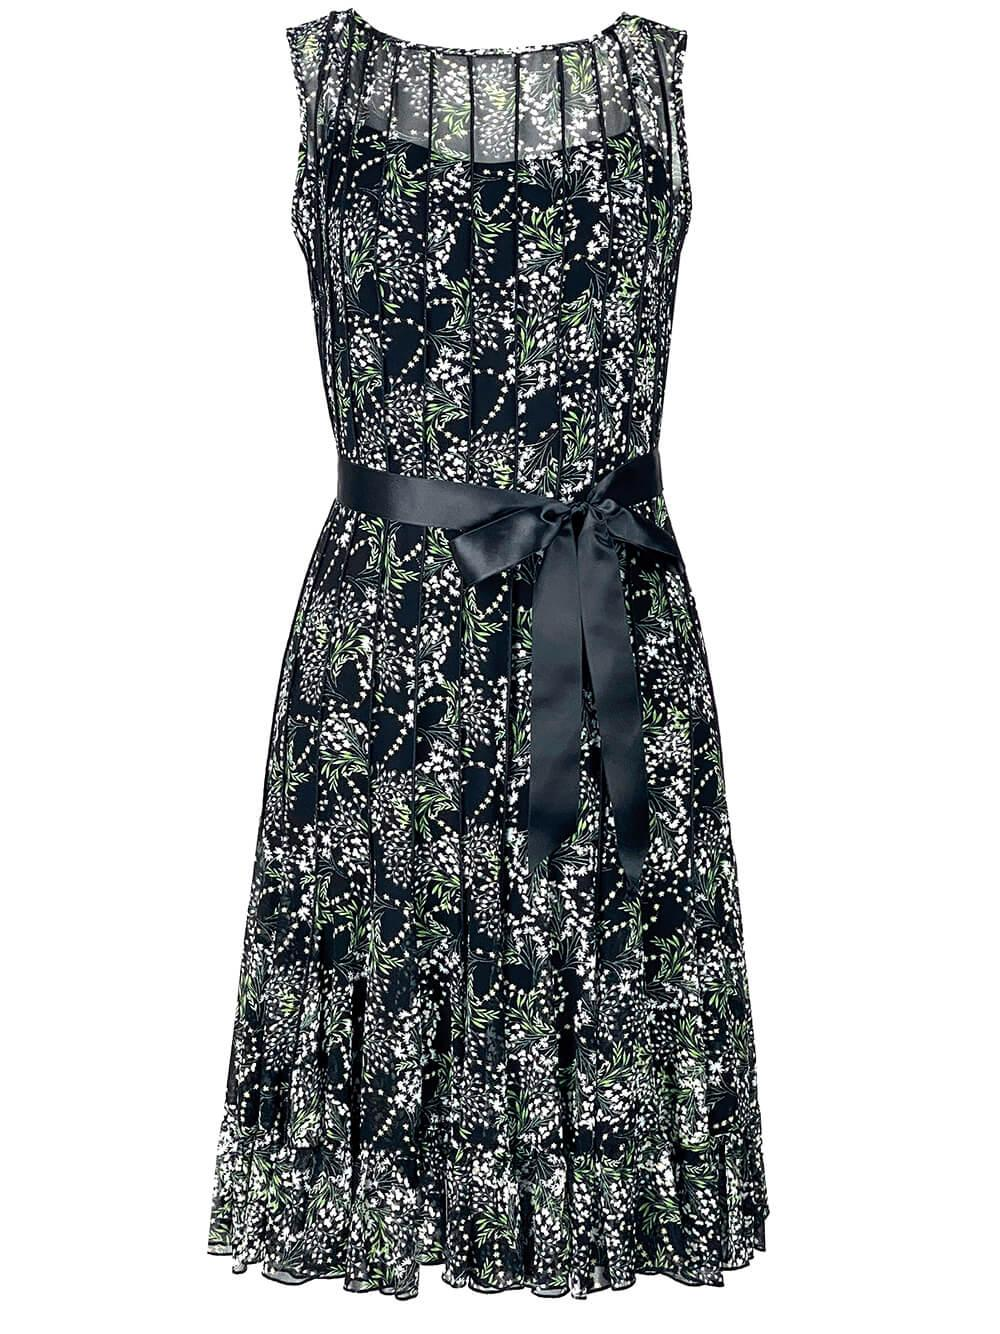 Ditsy Print Fit and Flare Dress